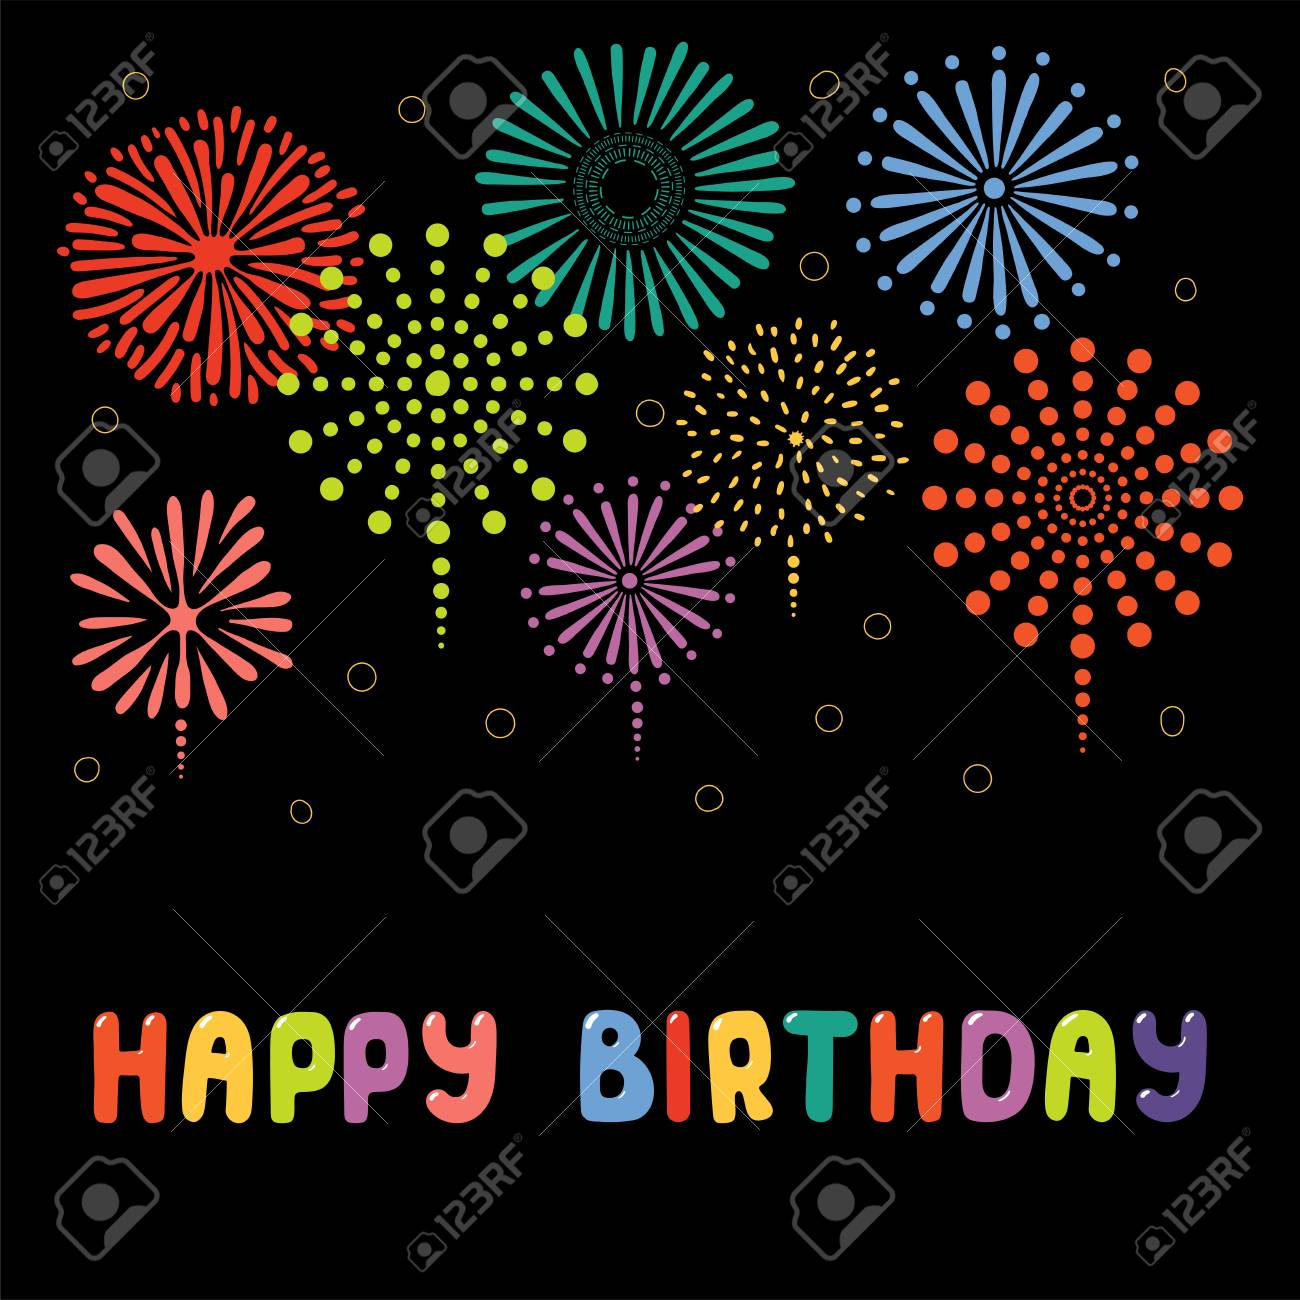 Hand Drawn Happy Birthday Greeting Card Banner Template With Typography Fireworks Isolated Objects